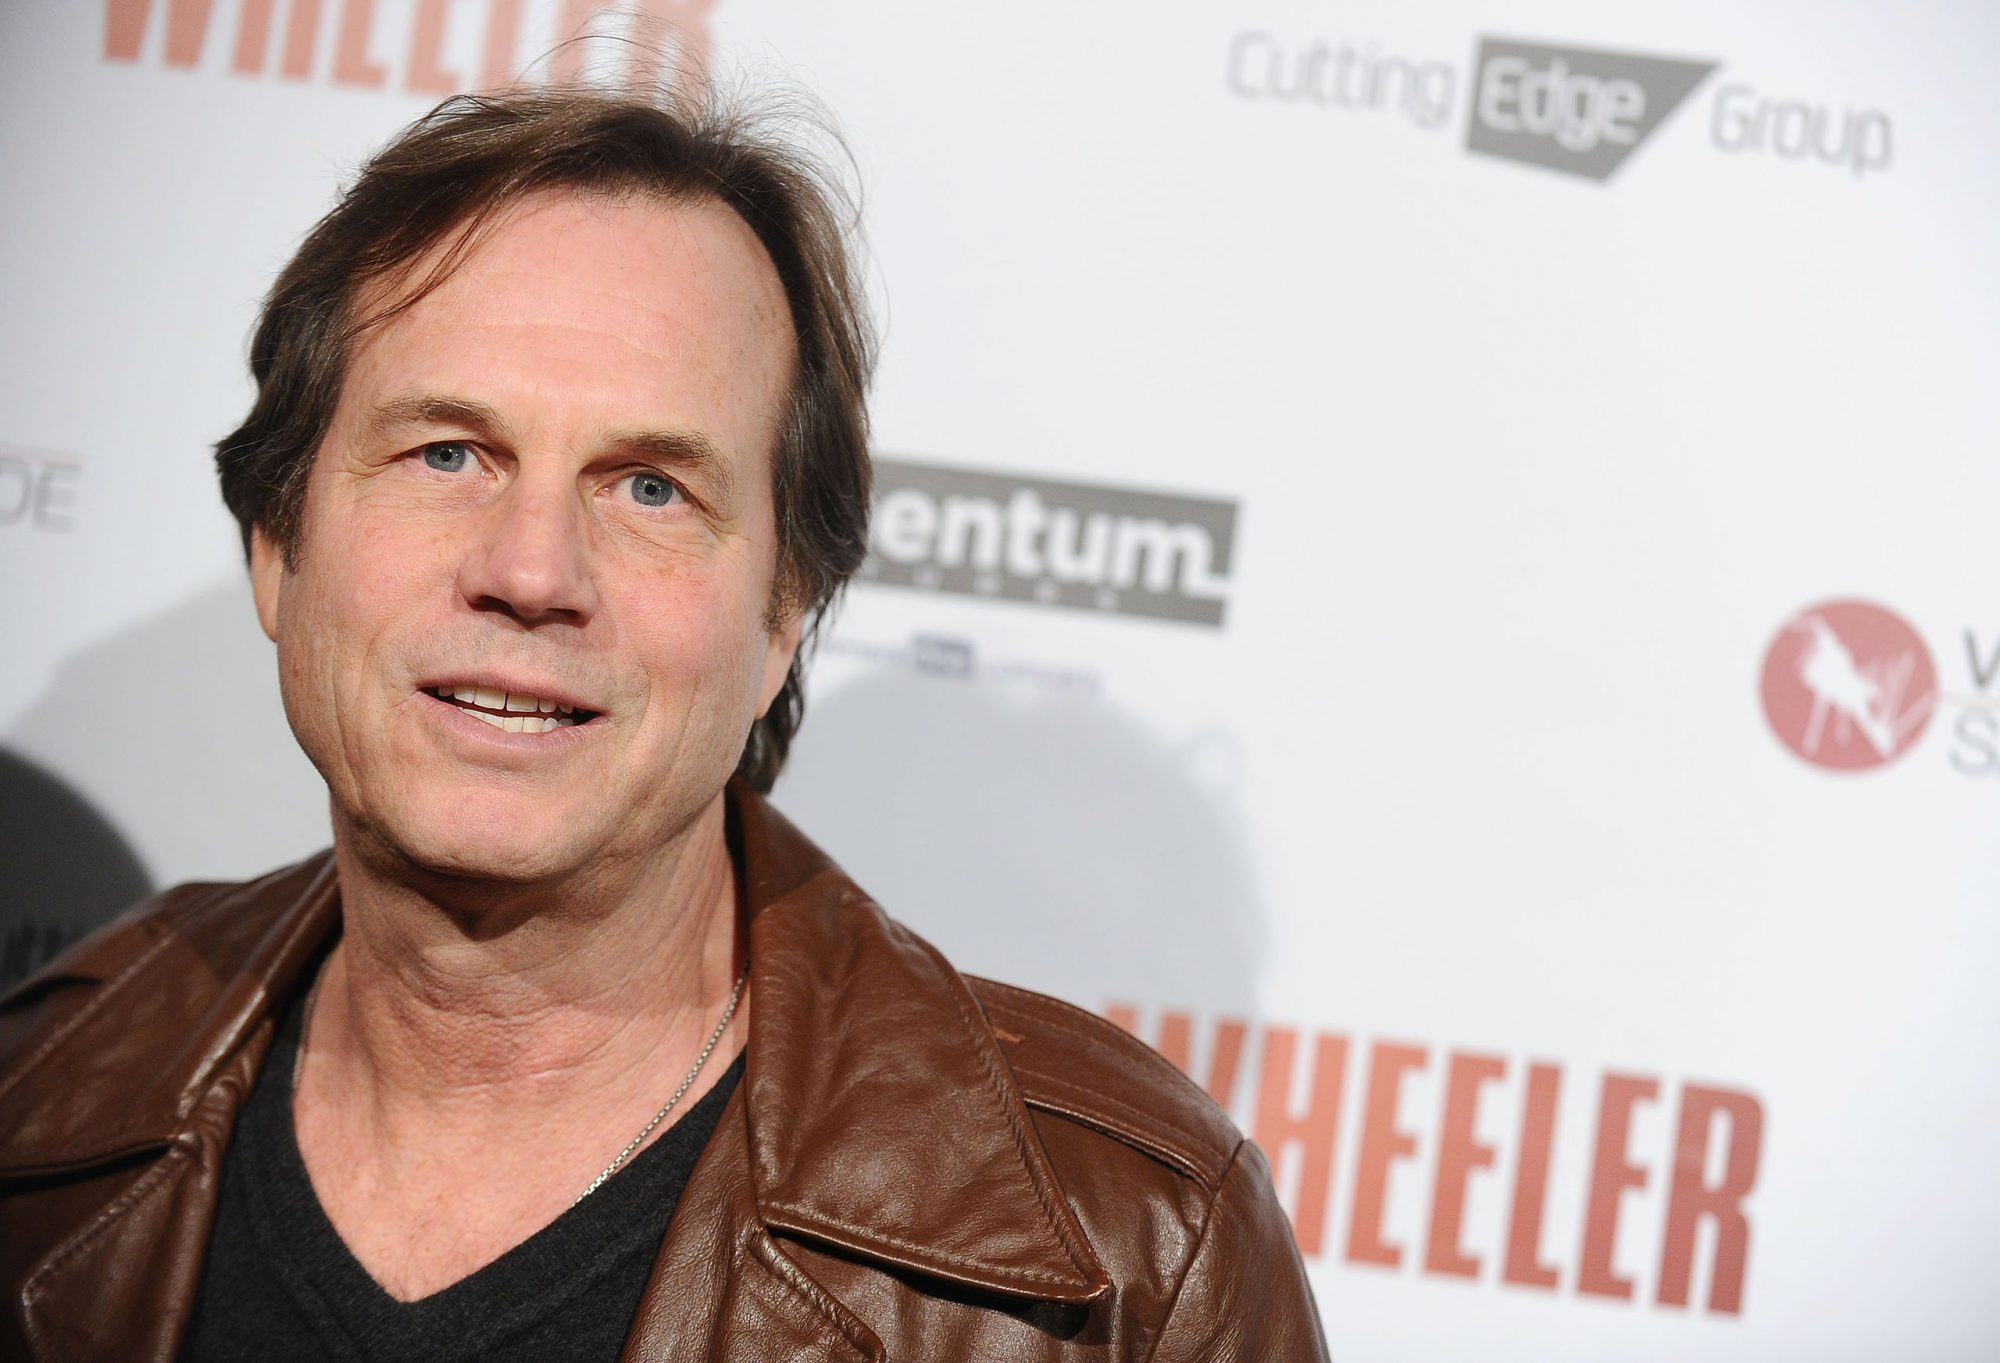 Actor Bill Paxton Dies at 61 Due to Surgery Complications